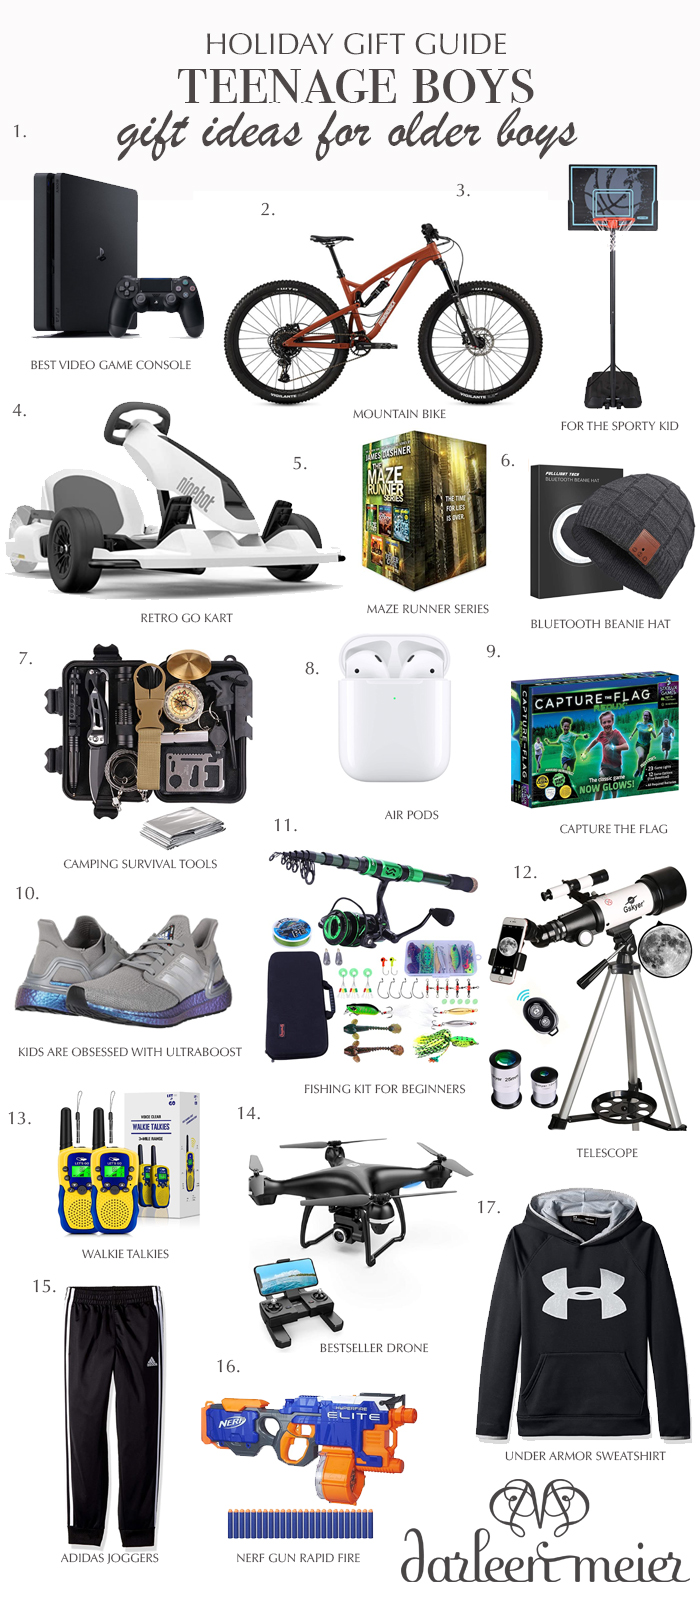 Gift guide for teenage boys, holiday gift shopping for teen boys, teen boys gift ideas, Christmas gifts for teenager boys, best seller gifts for teenager boys  || Darling Darleen Top Lifestyle CT Blogger #holidaygiftguide #giftguide